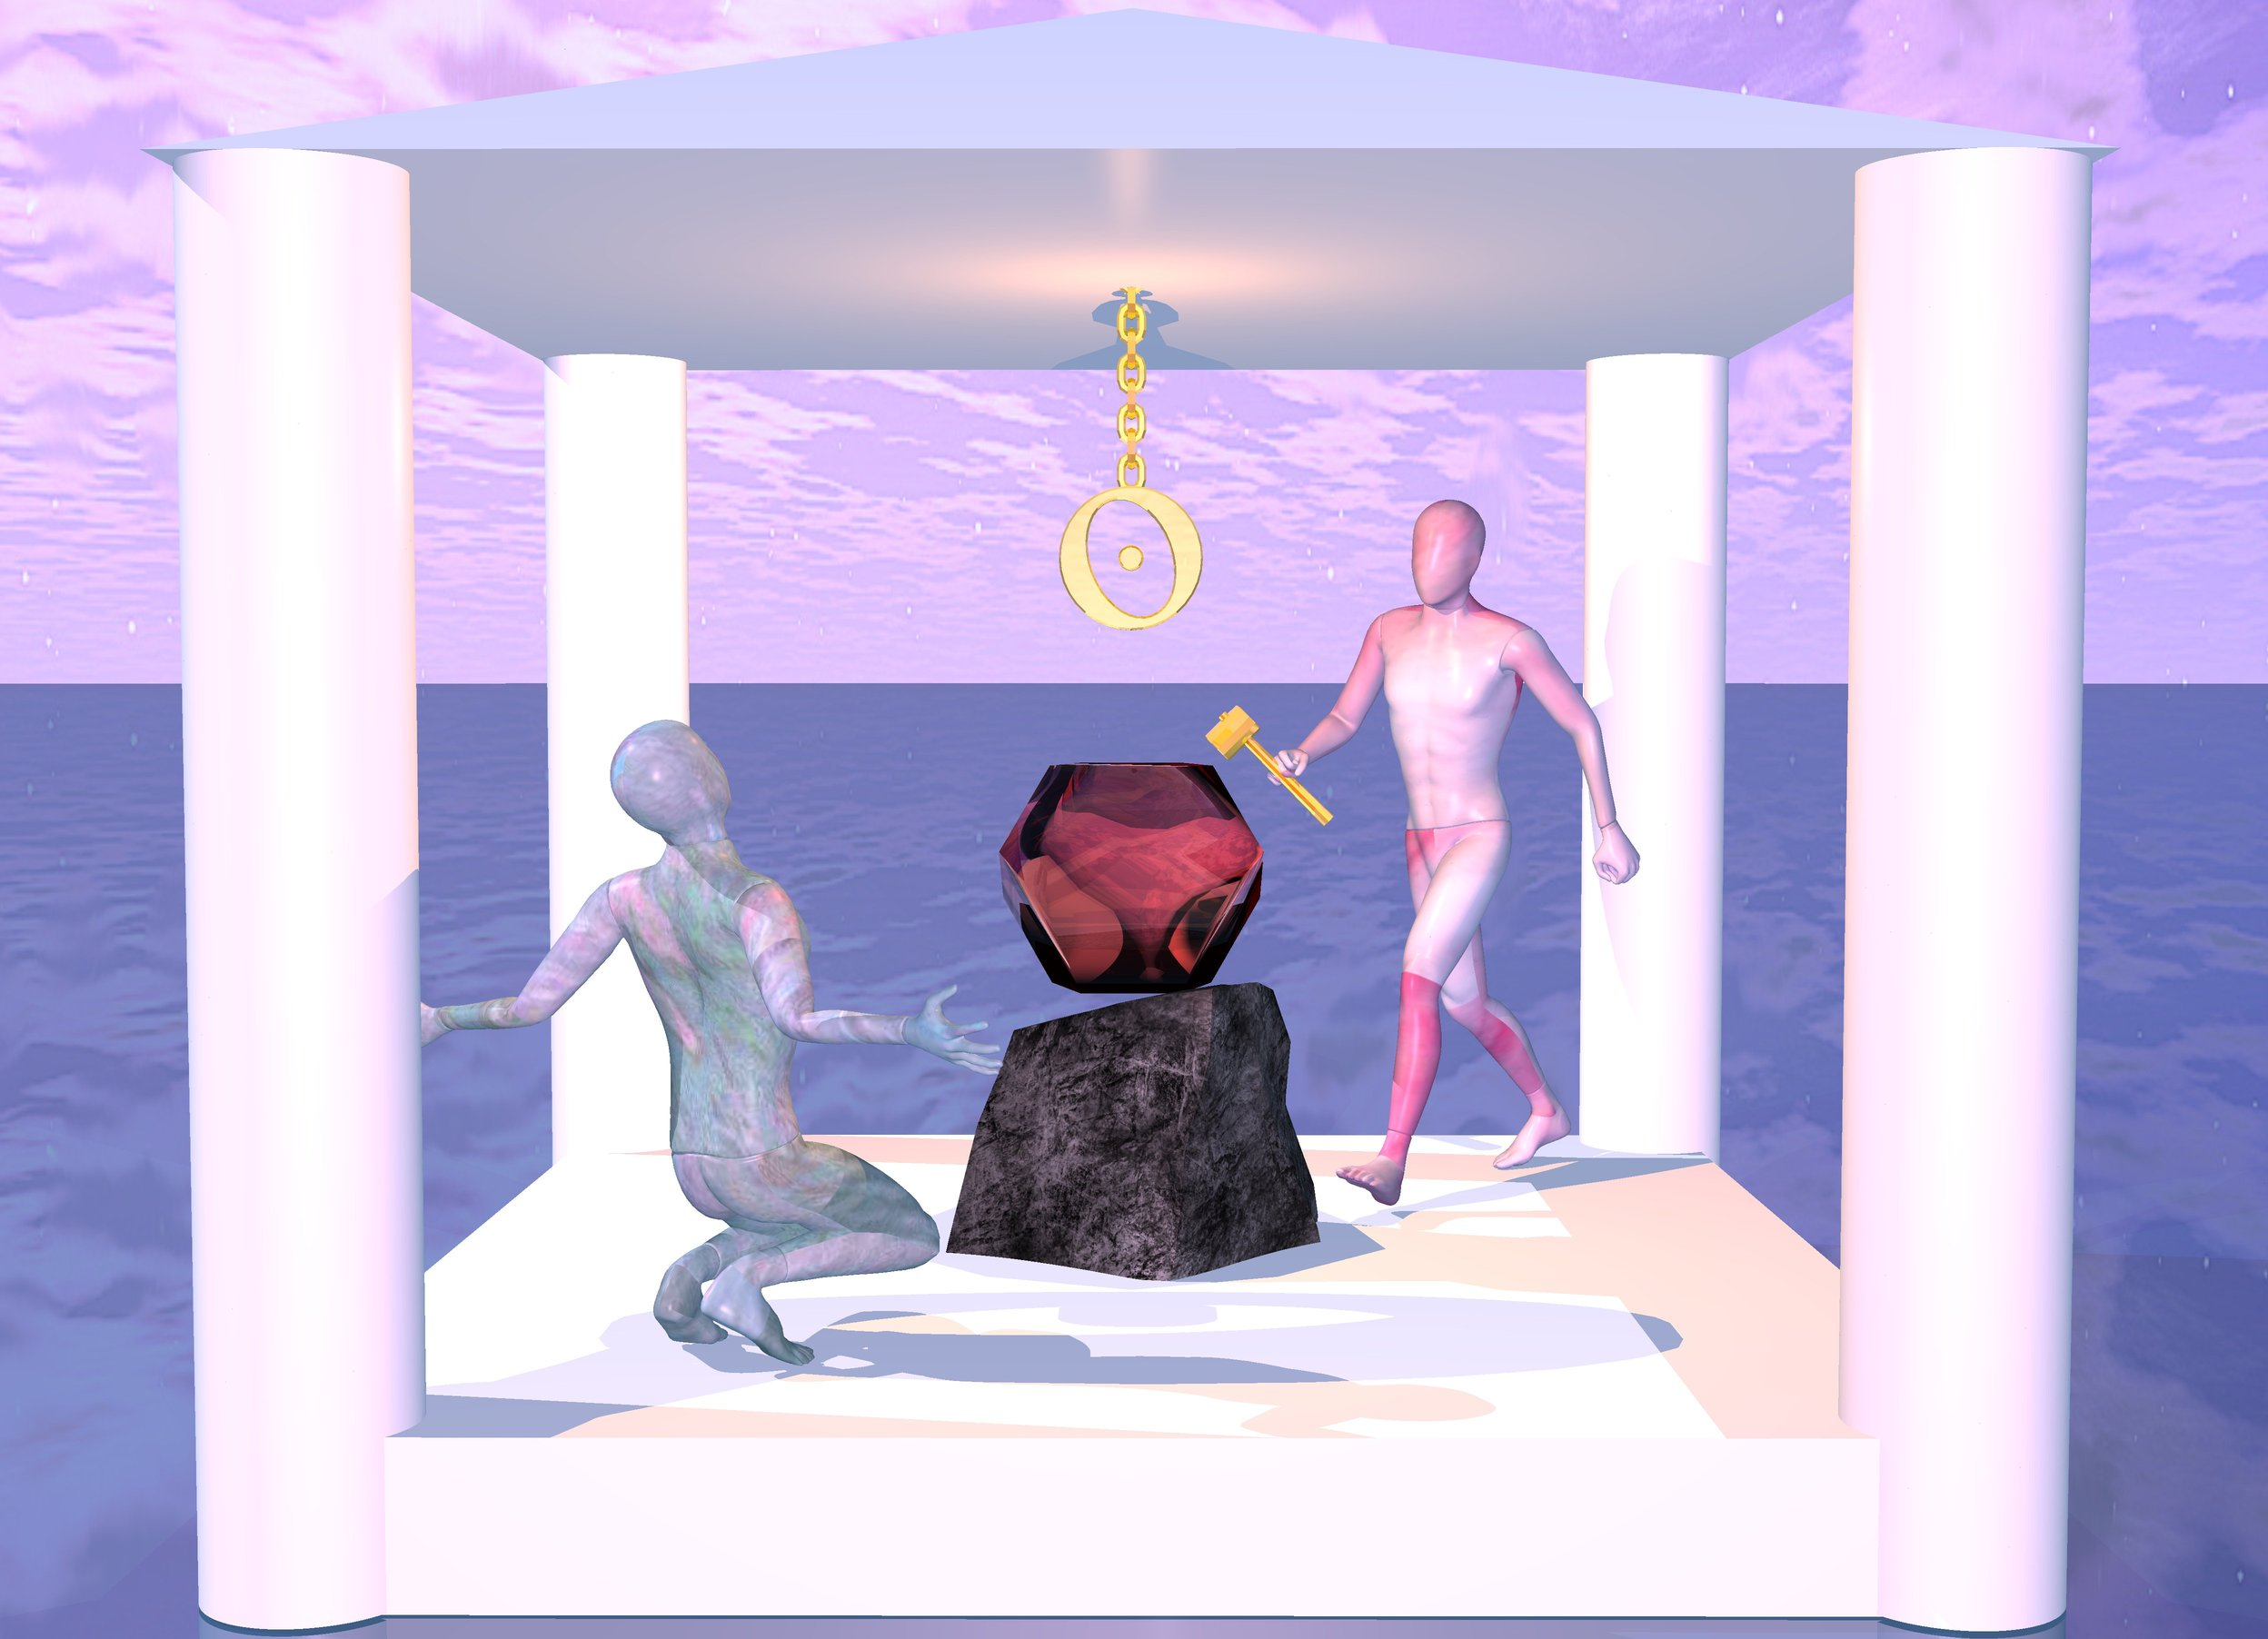 Input text: ground is shiny petrol blue.  a temple. rock is 11 feet in temple. clear quartz pink dodecahedron is 1 inch in rock.  dodecahedron is upside down.  first [texture] mannequin is -1 foot right of rock and -1 foot to back.  first mannequin is 9.01  feet in temple. first mannequin is  facing southwest. gold hammer is -1.1 foot left of  first mannequin and 3.9 feet above ground. hammer is -1.86 foot to front. hammer is leaning 45 degrees to right. second [texture] mannequin is -2 foot left of rock and -0.5 foot to front. second mannequin is 9 foot in temple. second mannequin is facing rock. gold chain is 3.5 feet above rock. chain is leaning 90 degrees to front. small gold sun symbol is 2.5 feet above rock and -2 feet to back.  ambient light is azure blue. sun is lilac. camera light is wildness. old gold light is  in front of chain.